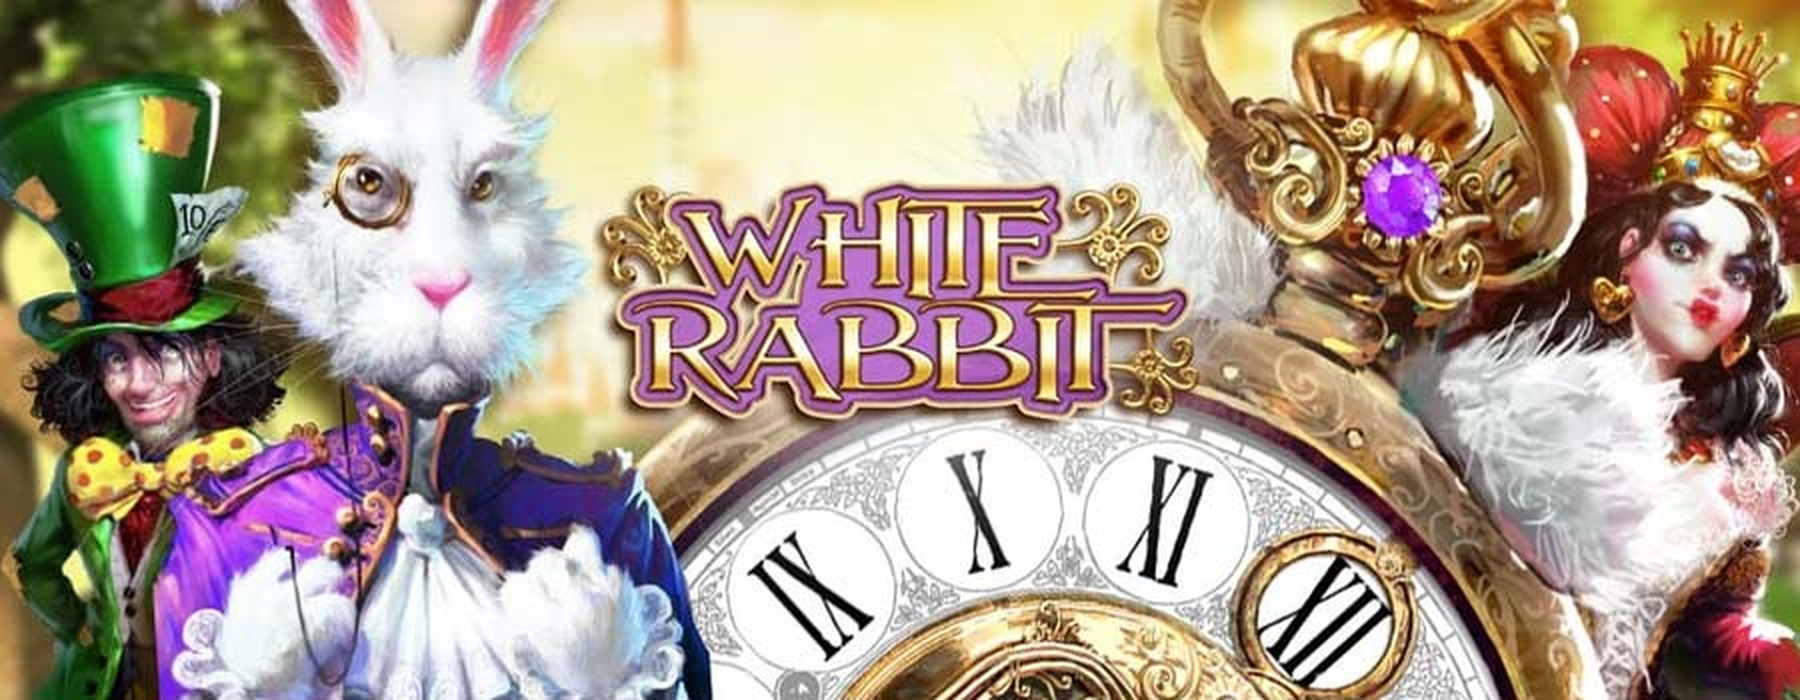 The White Rabbit Online Slot Demo Game by Big Time Gaming